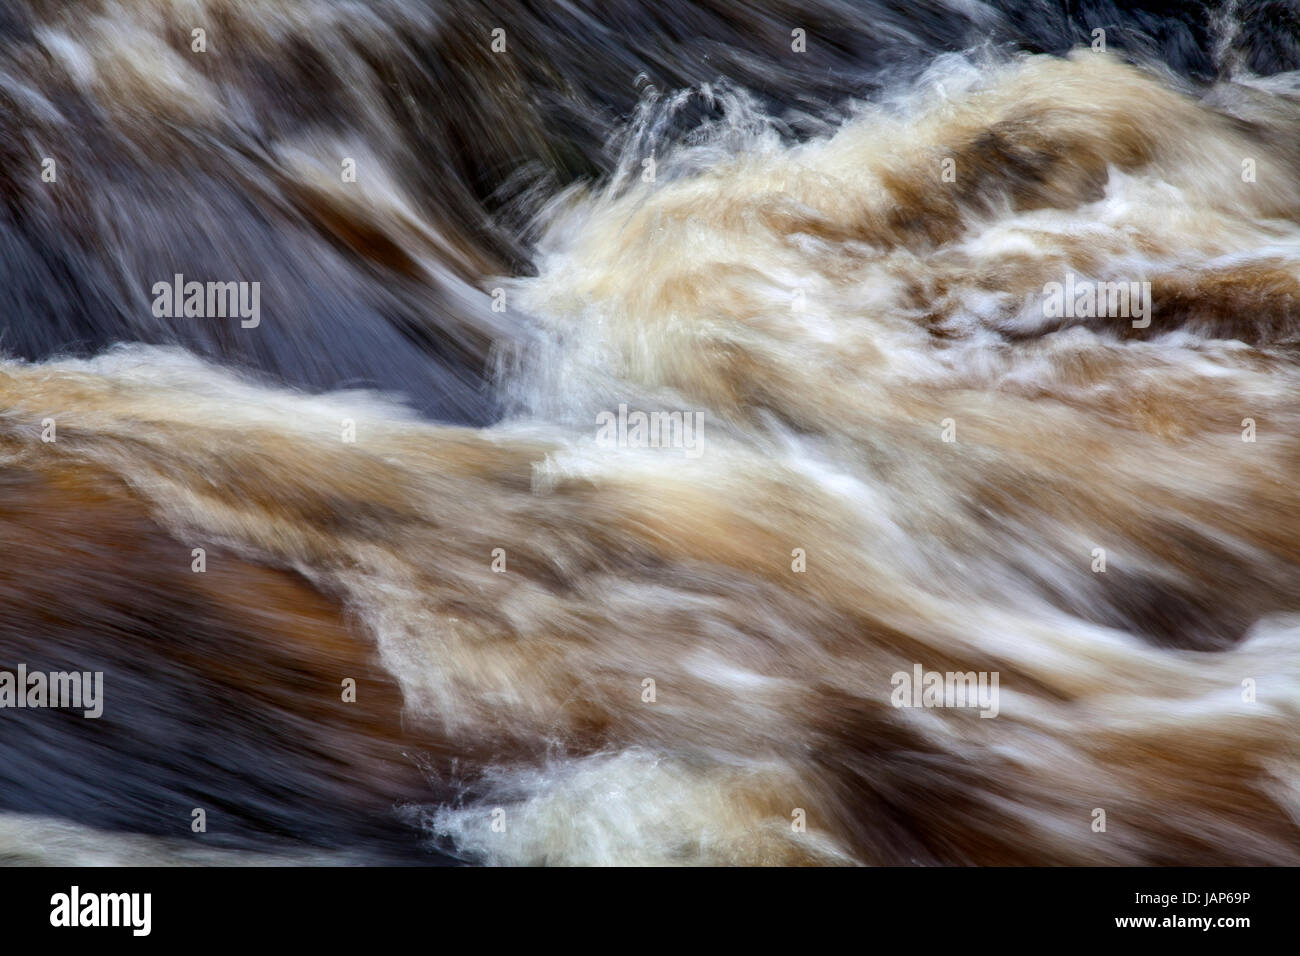 River Wharfe at The Strid, Bolton Abbey Estate, Wharfedale, Yorkshire Dales - Stock Image